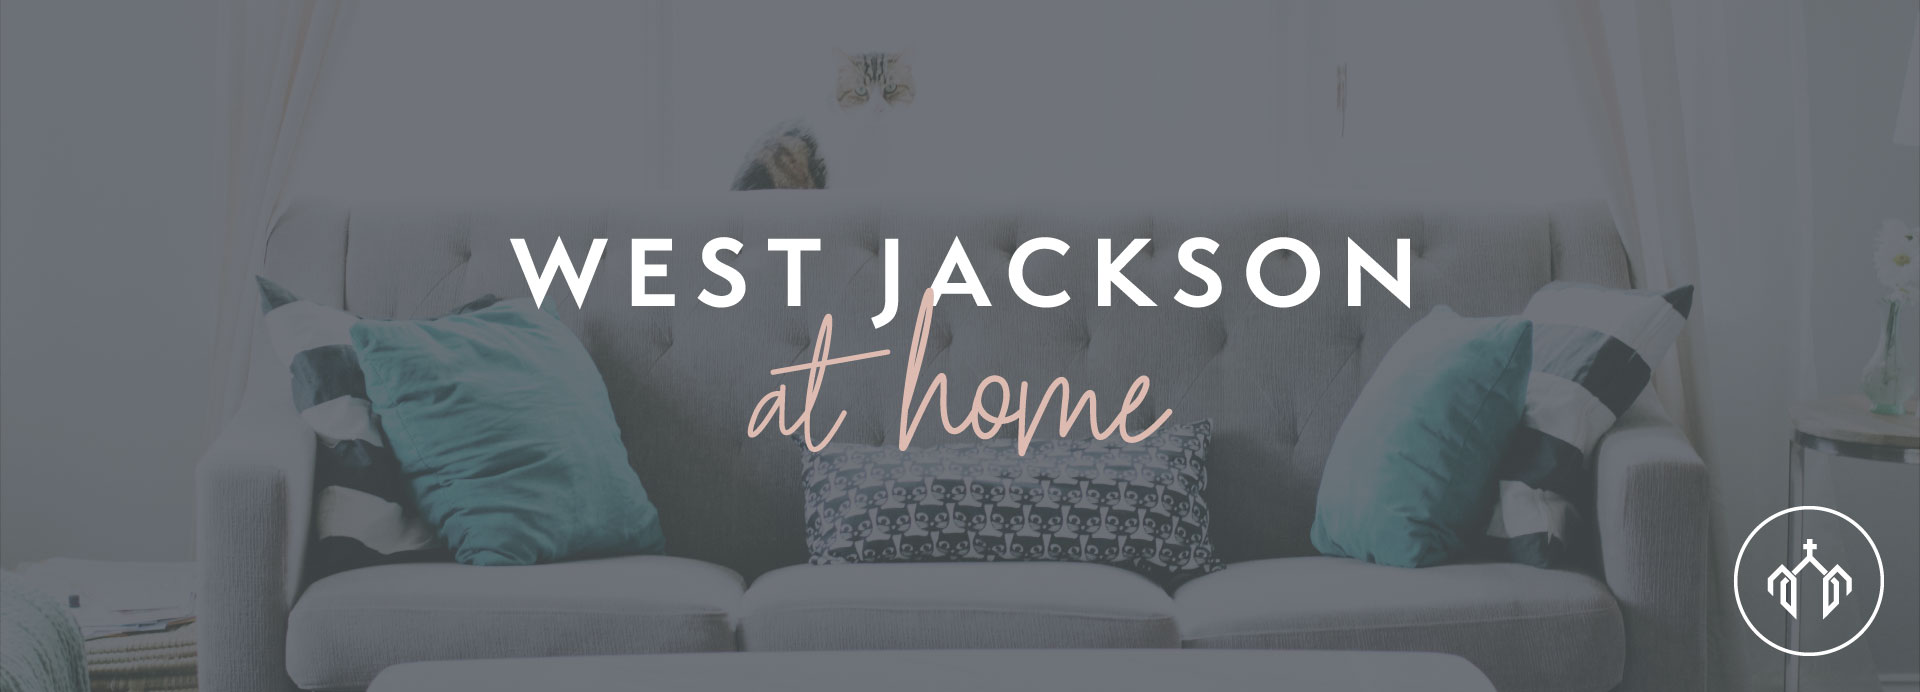 West Jackson at Home